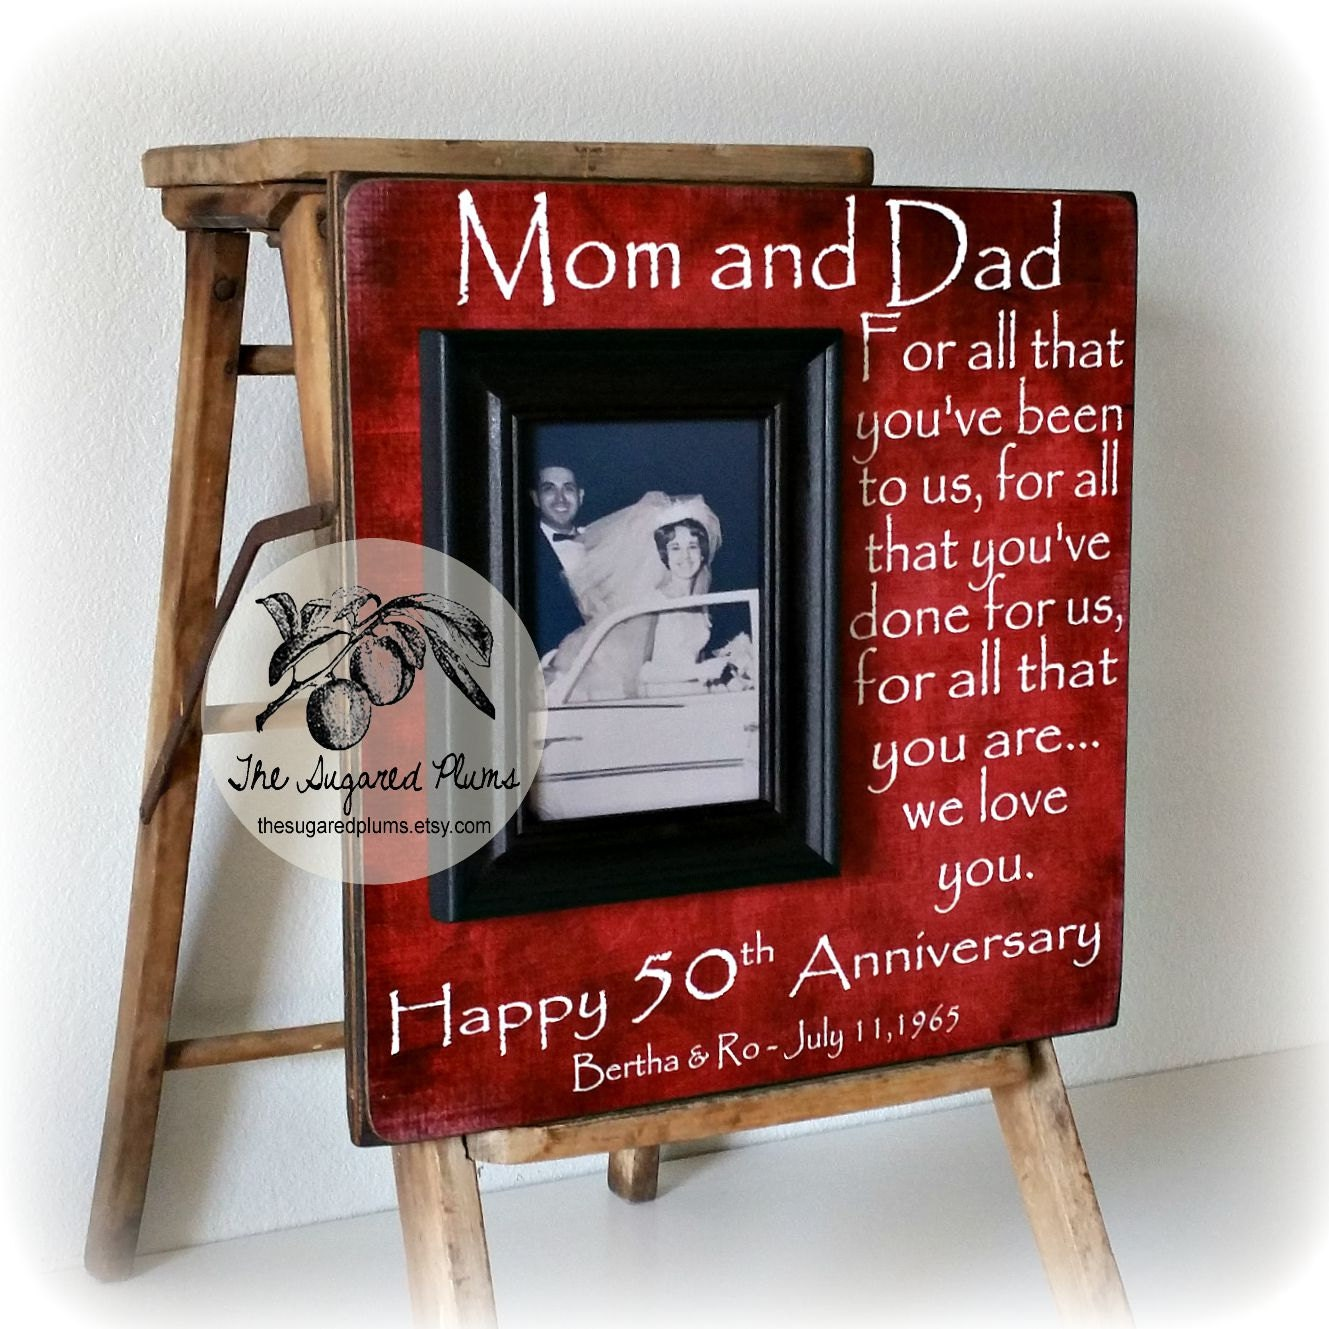 Unique Gifts 50th Wedding Anniversary : 50th Anniversary Gifts Parents Anniversary Gift For All That